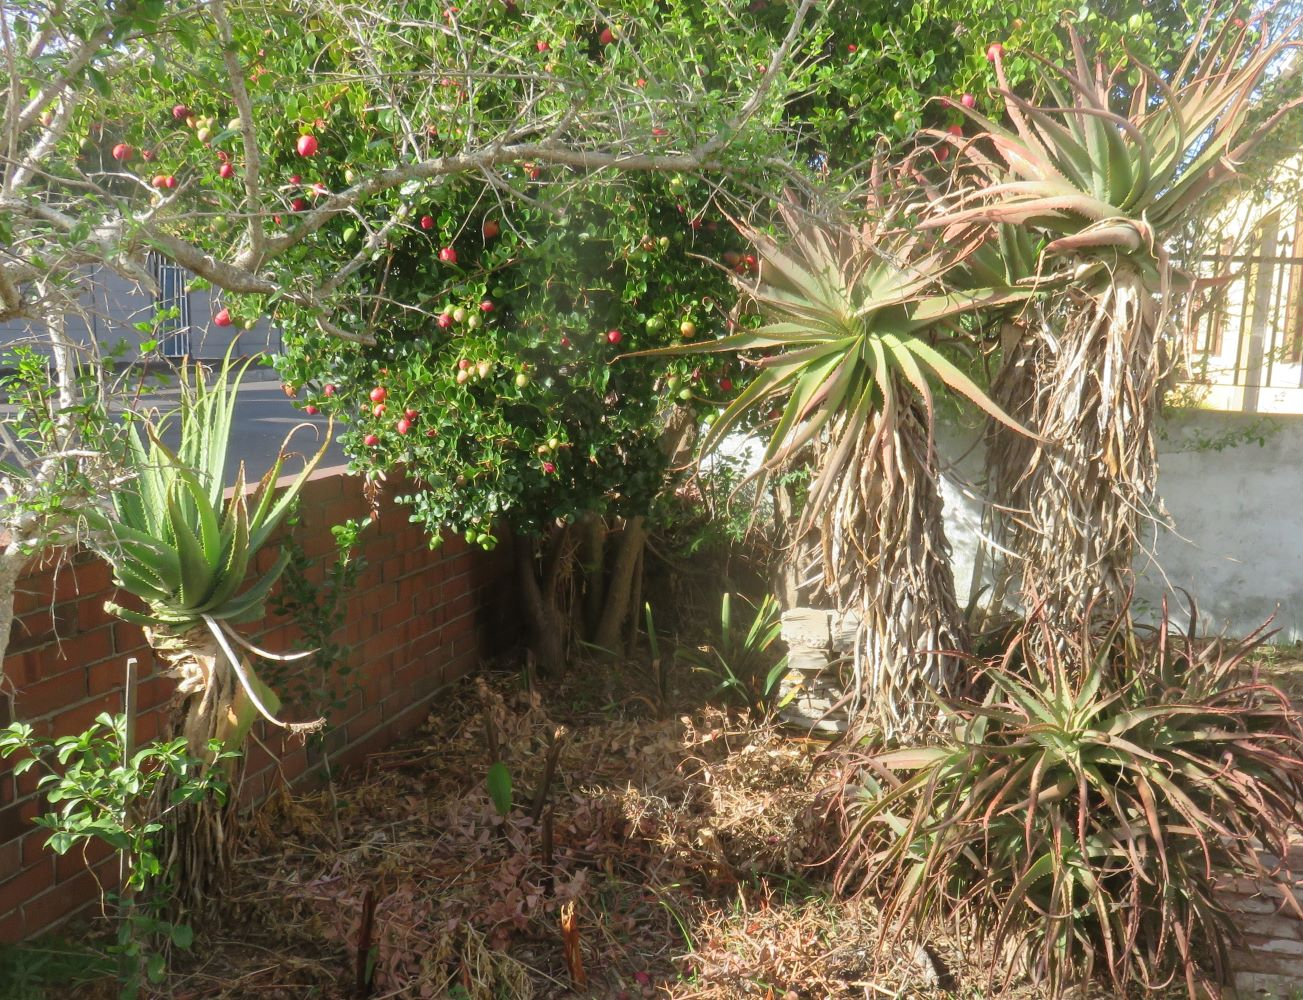 The single head and  height of Aloe arborescens. The one growing at the street wall has been harvested by passers by for medicinal and cosmetic use.